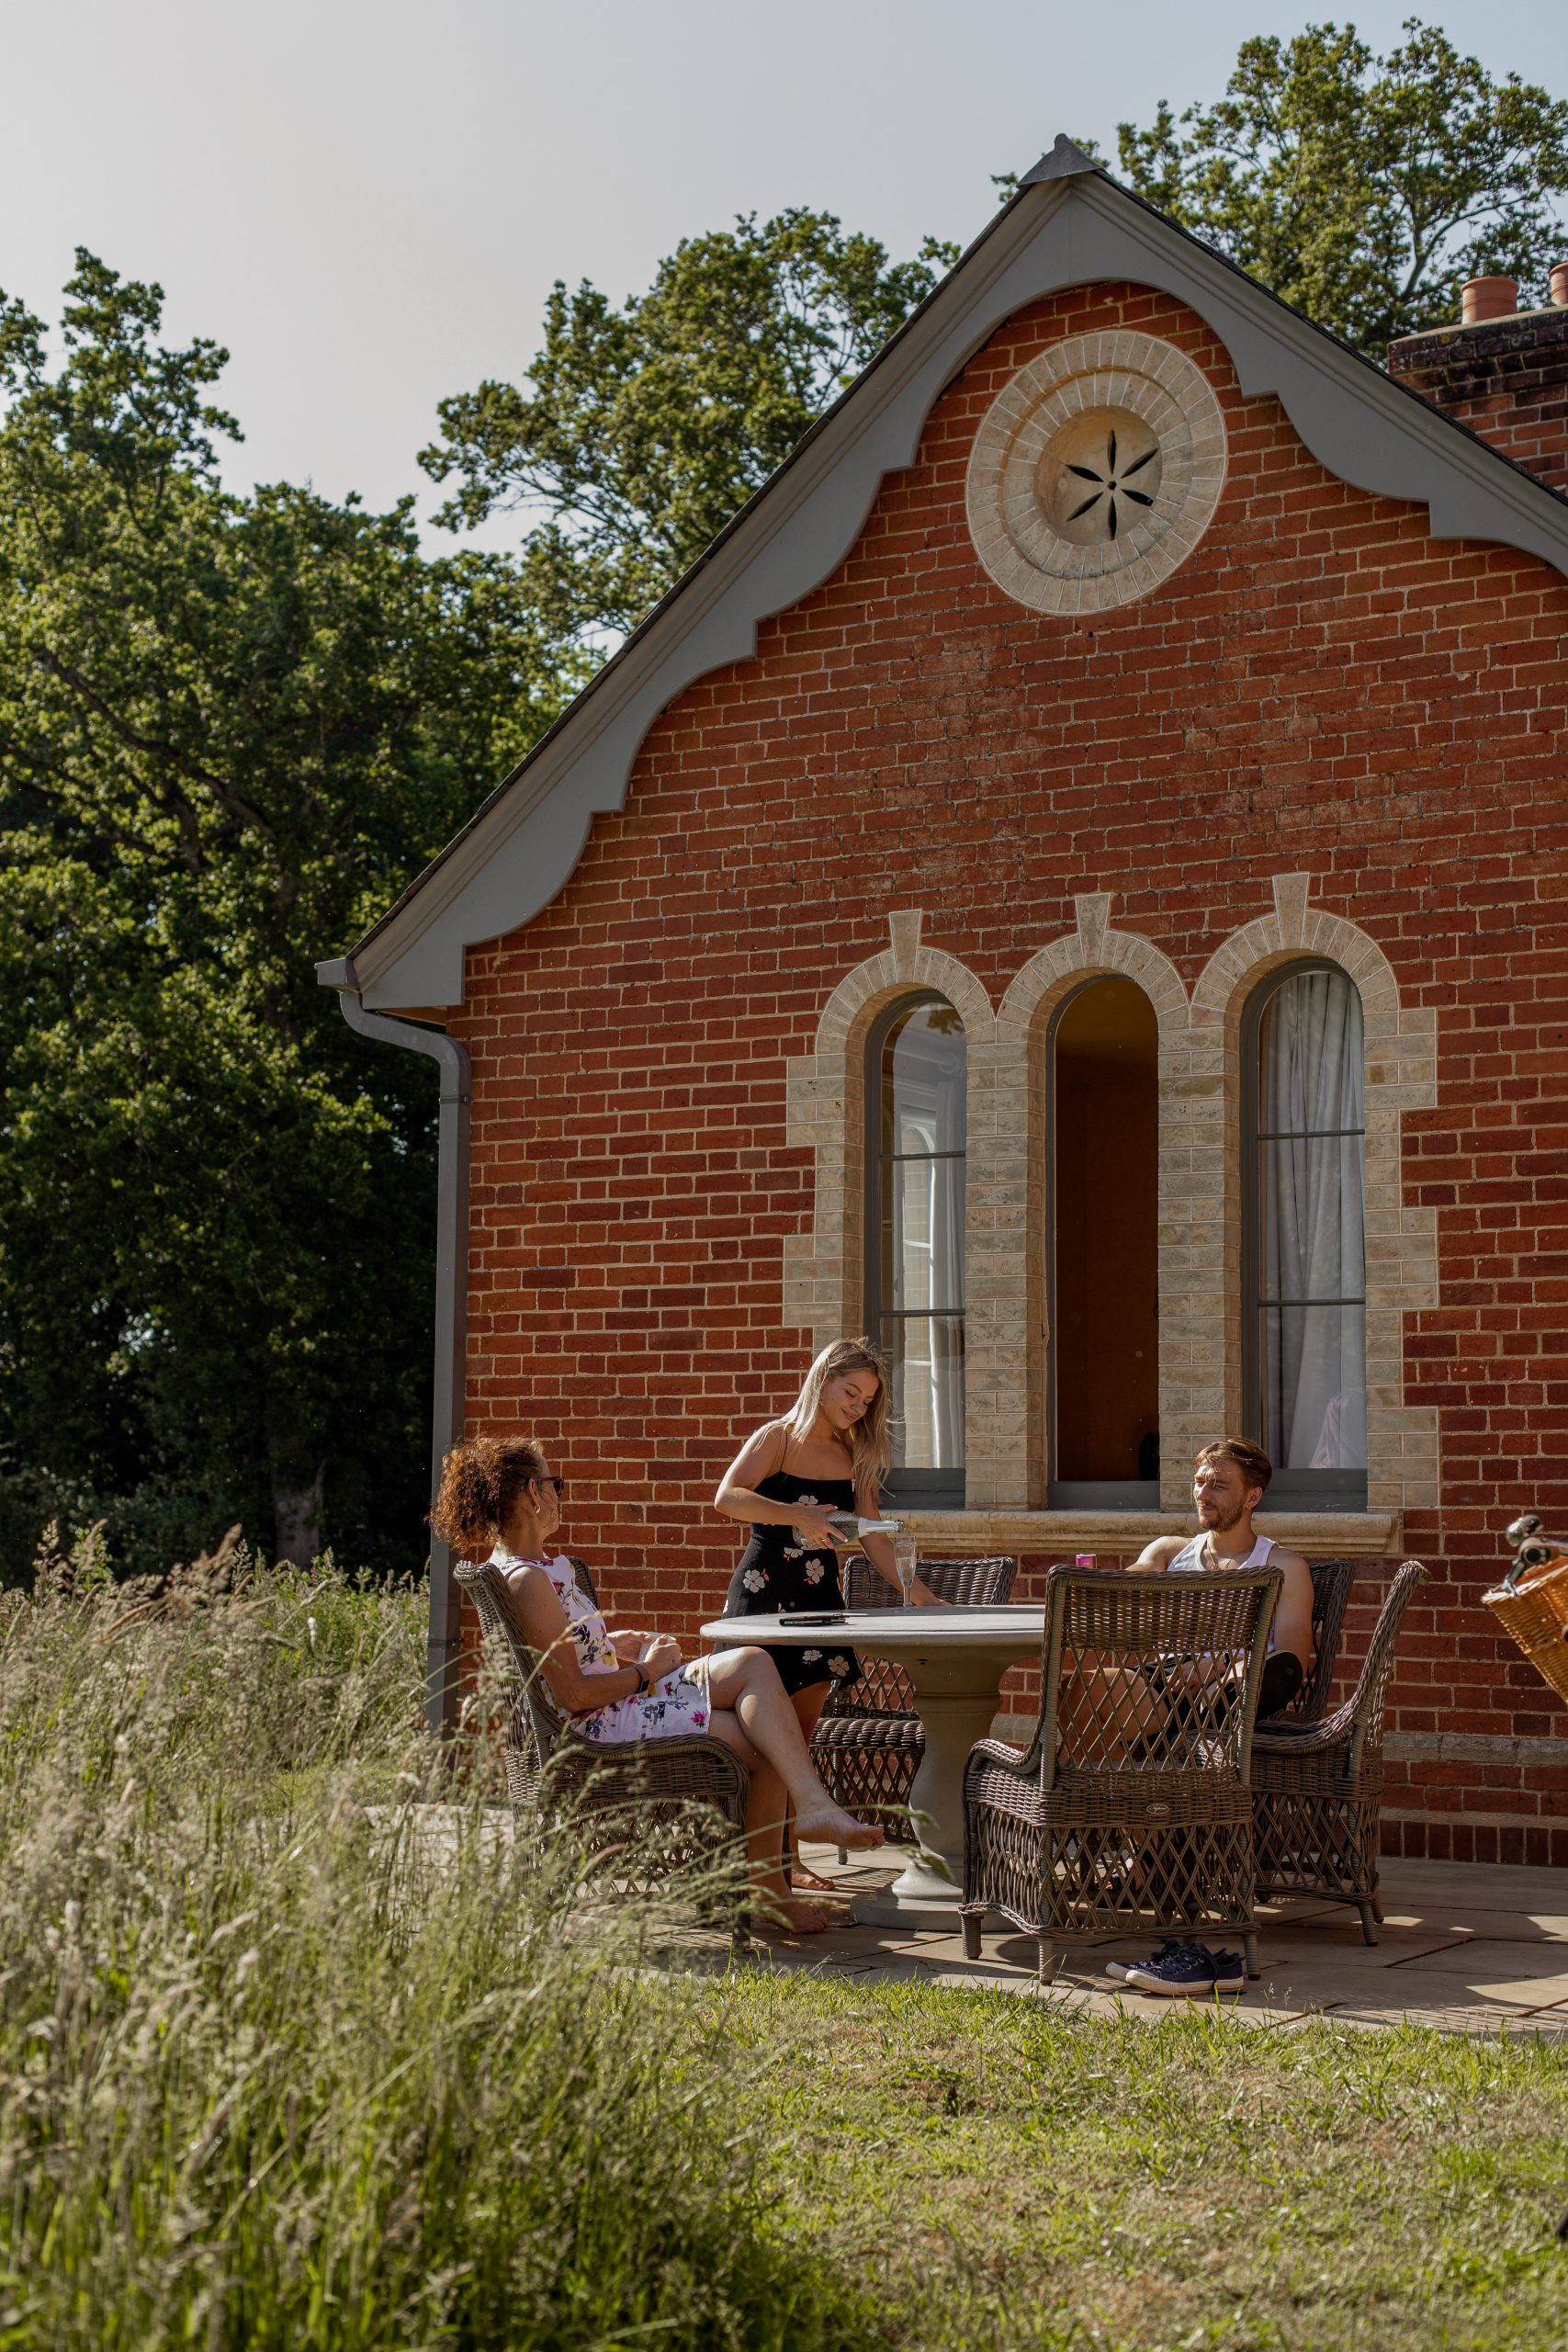 Three people sitting on a round table and wicker chairs outside Garden Cottage, Wilderness Reserve Suffolk. The woman in the middle is pouring wine while the other two speak to each other.